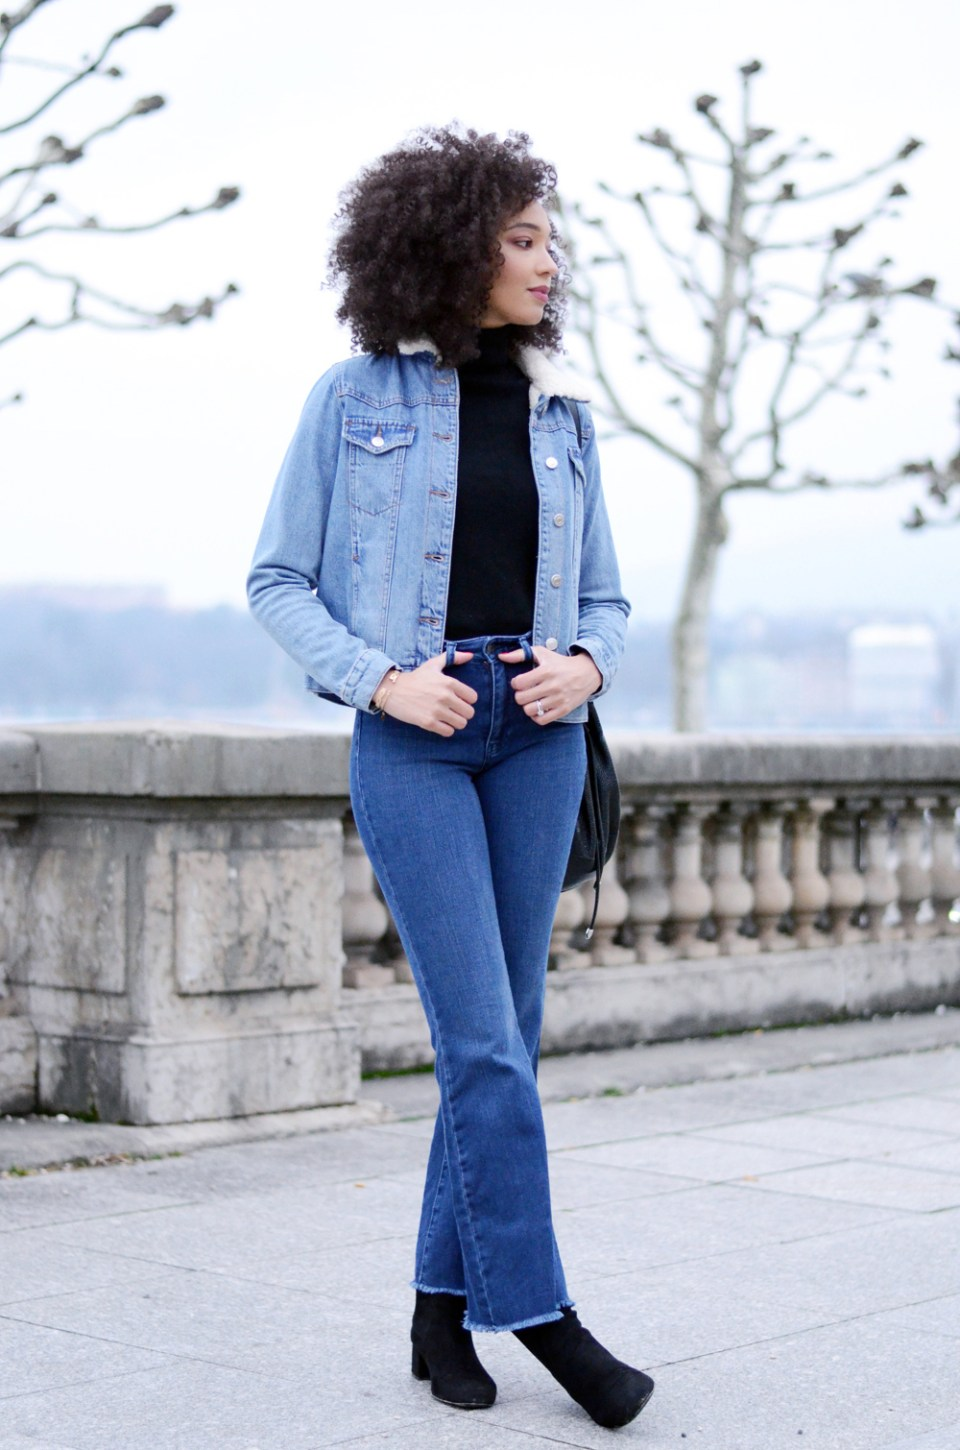 mercredie-blog-mode-geneve-suisse-blogueuse-bloggeuse-jean-flare-selected-sfena-aldo-stefi-boots-topshop-denim-jean-jacket-levis-turtle-neck-black9